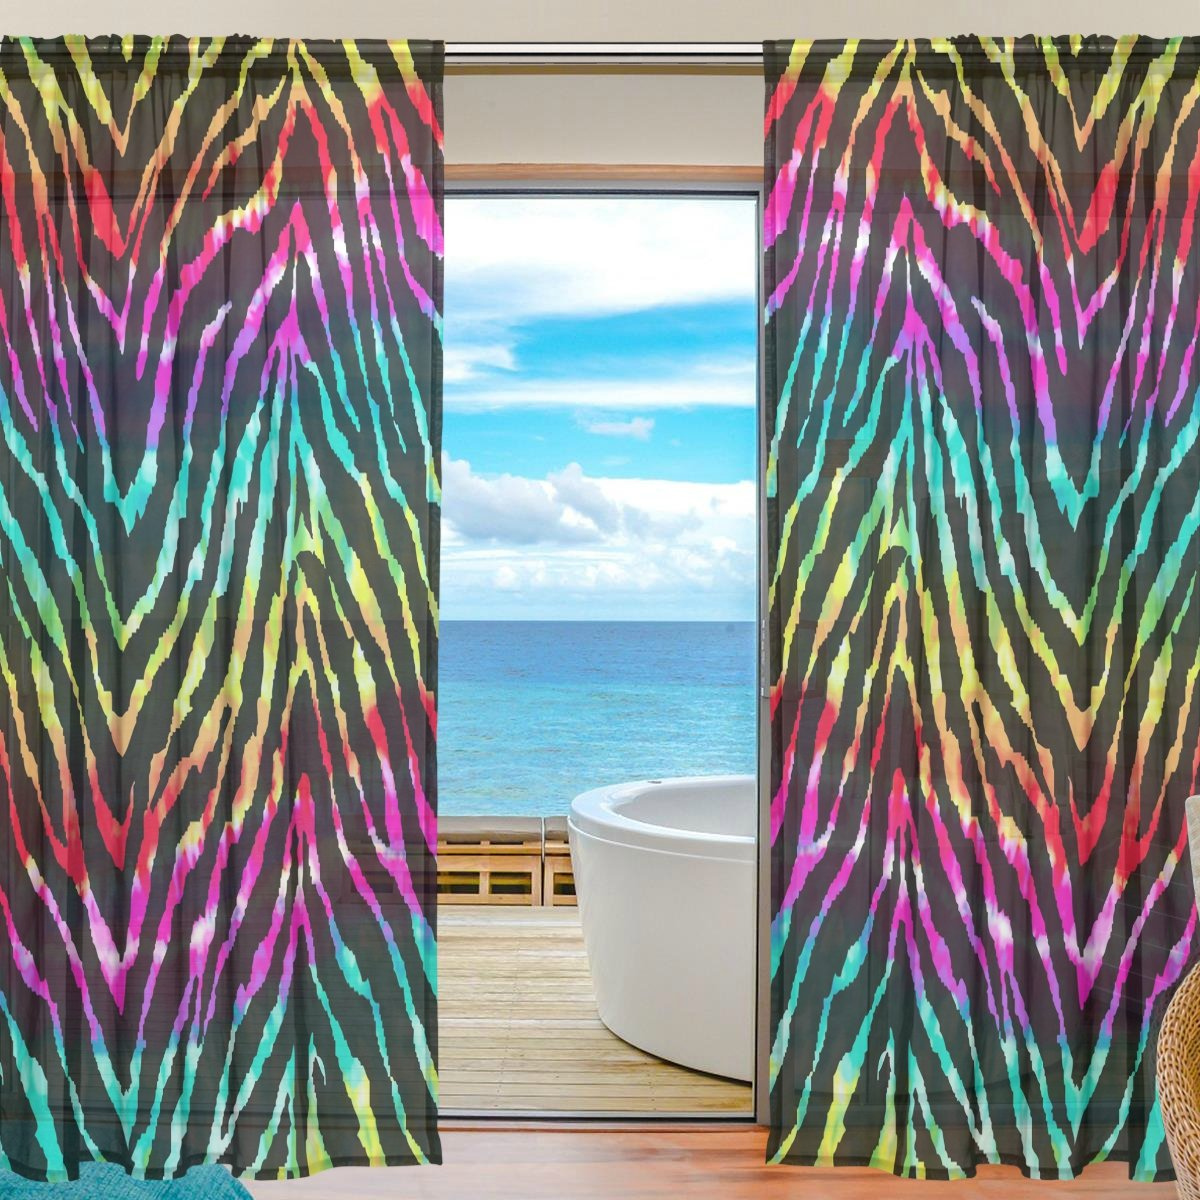 SEULIFE Window Sheer Curtain Zebra Animal Print Rainbow Voile Curtain Drapes for Door Kitchen Living Room Bedroom 55x78 inches 2 Panels